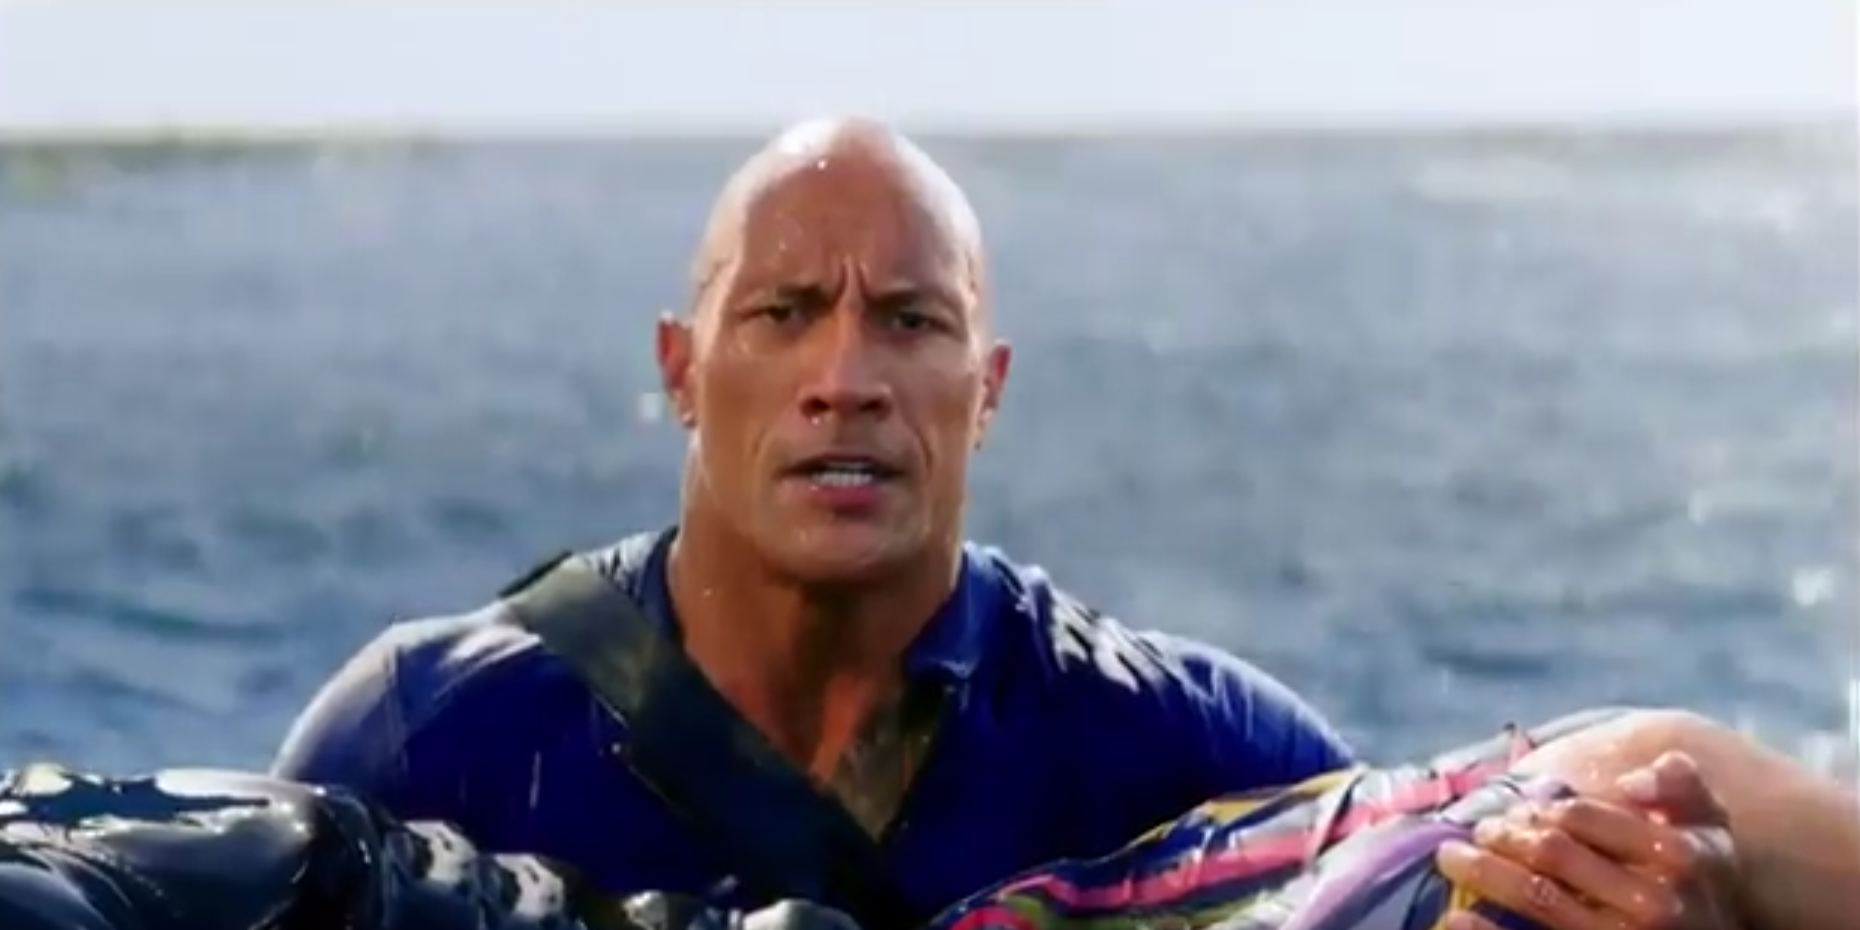 Dwayne Johnson is ready for action in the first Baywatch trailer teaser